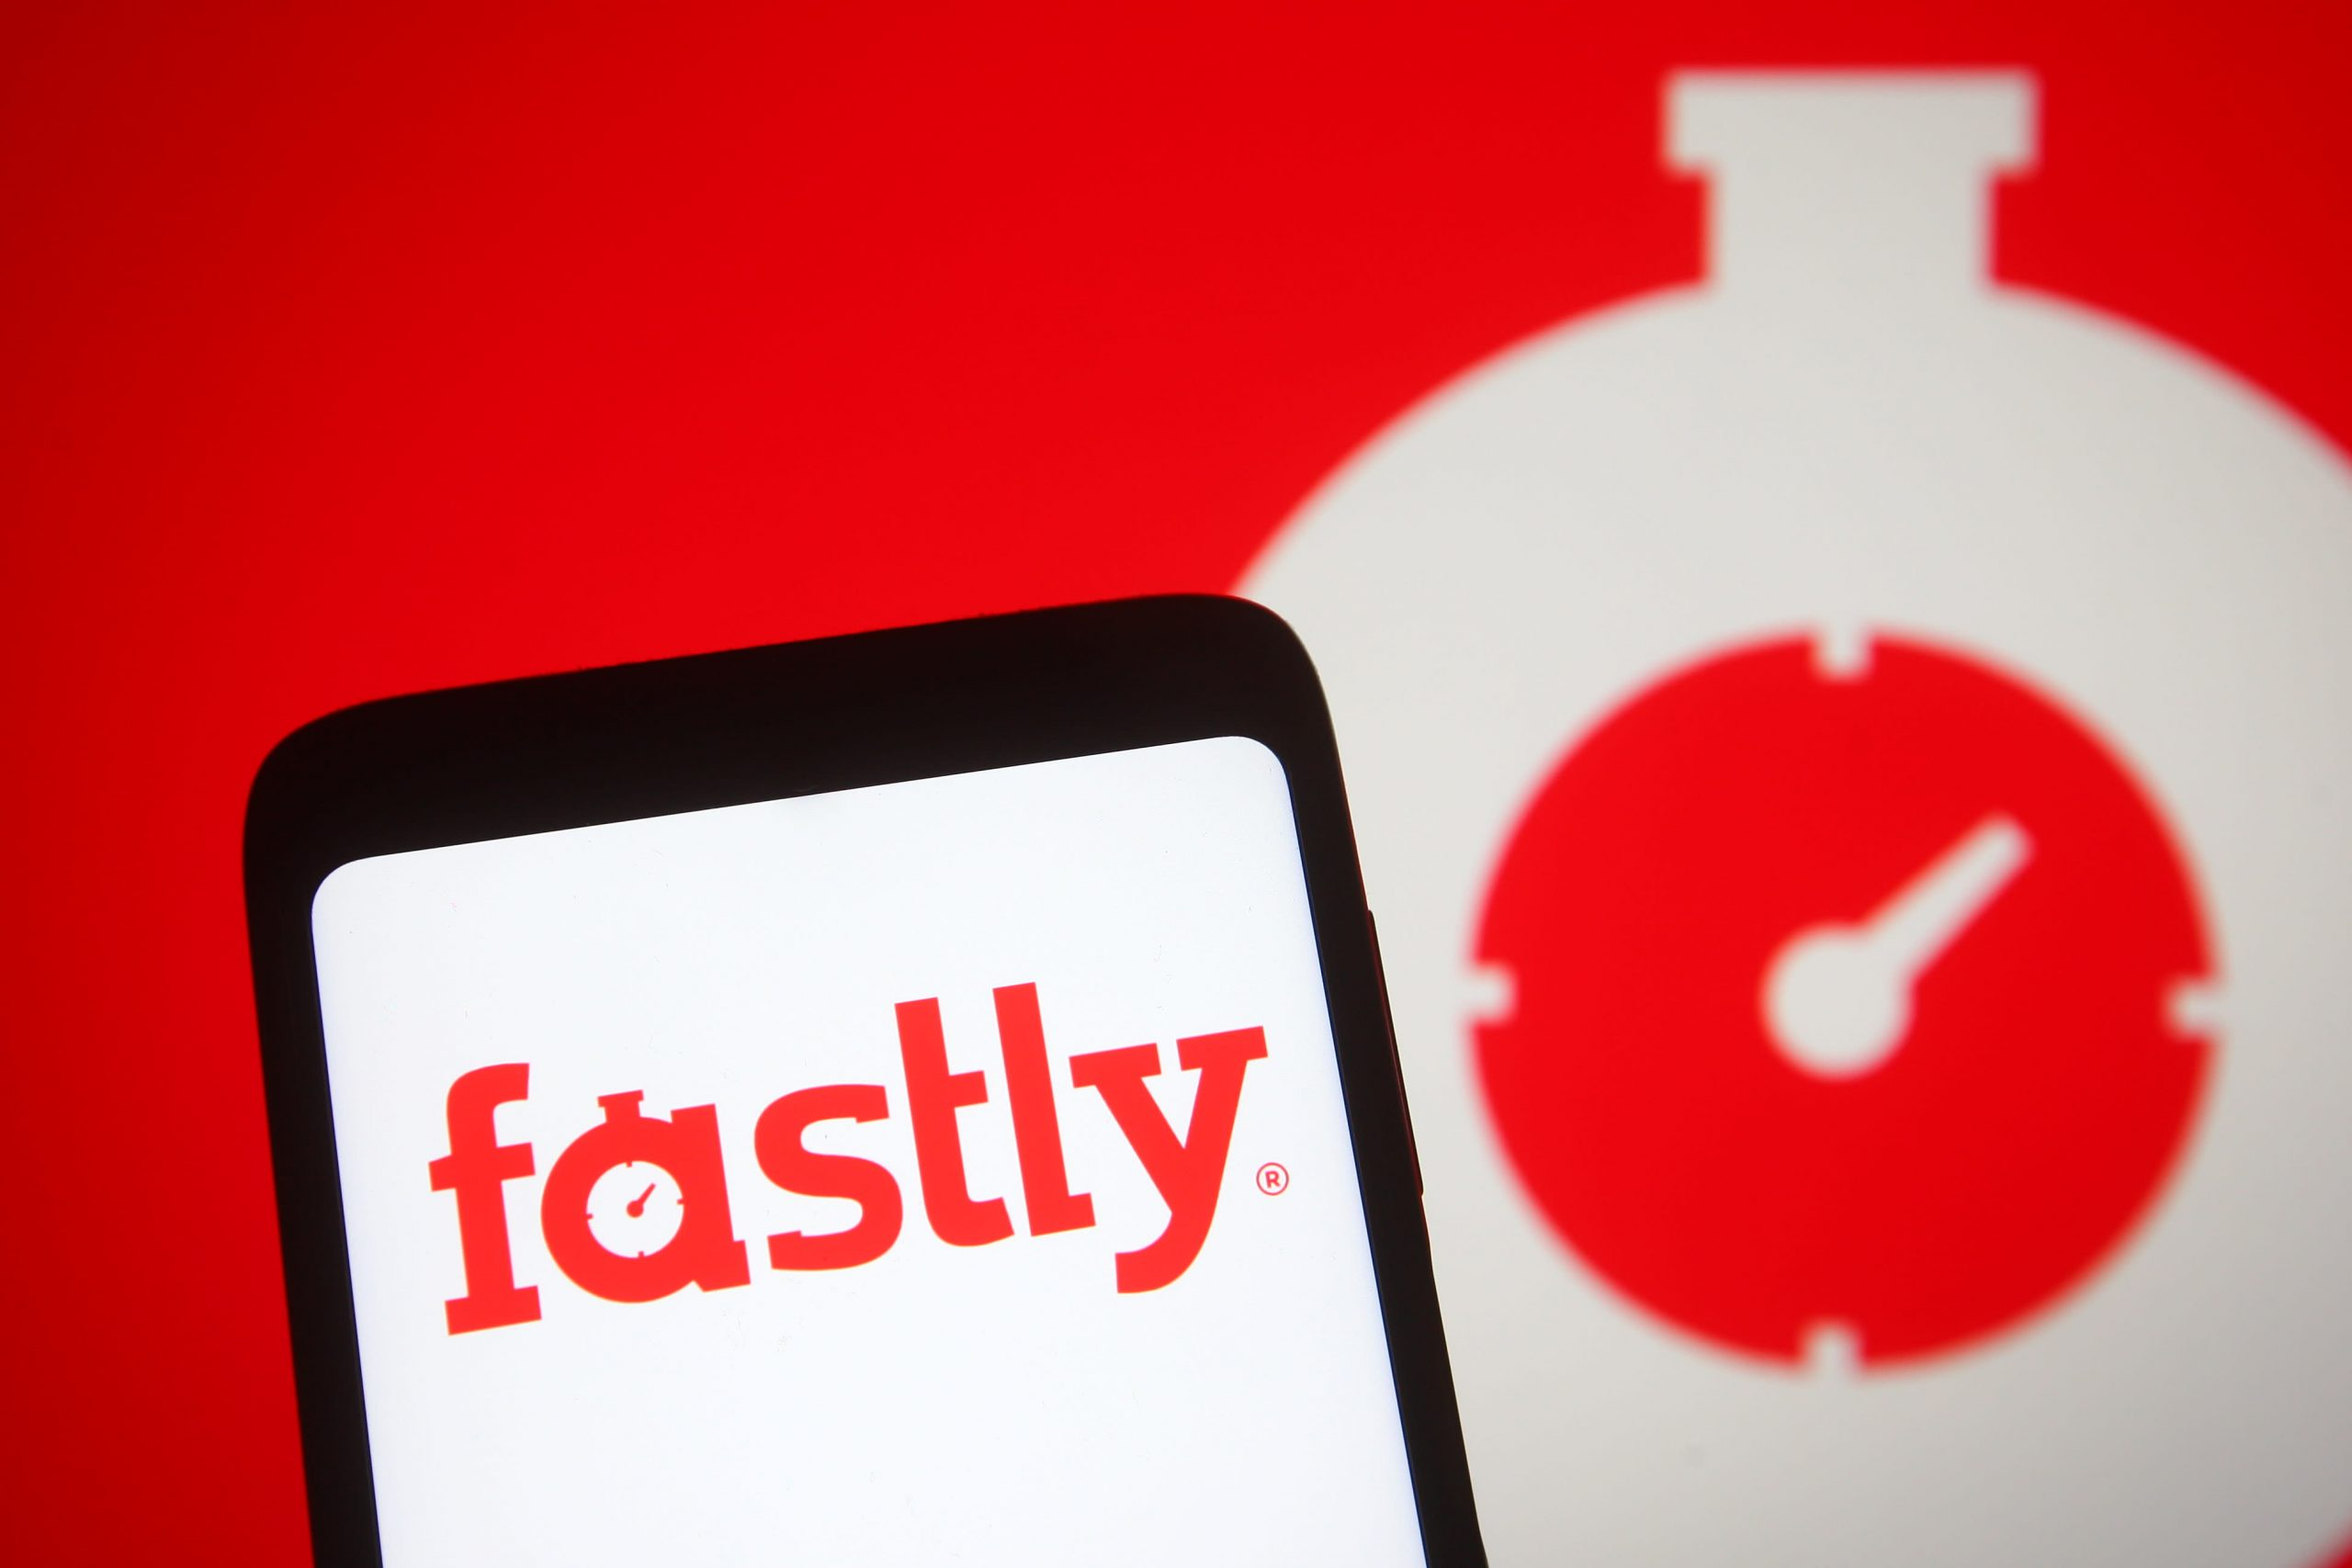 What is Fastly and why did it cause an outage for major websites?